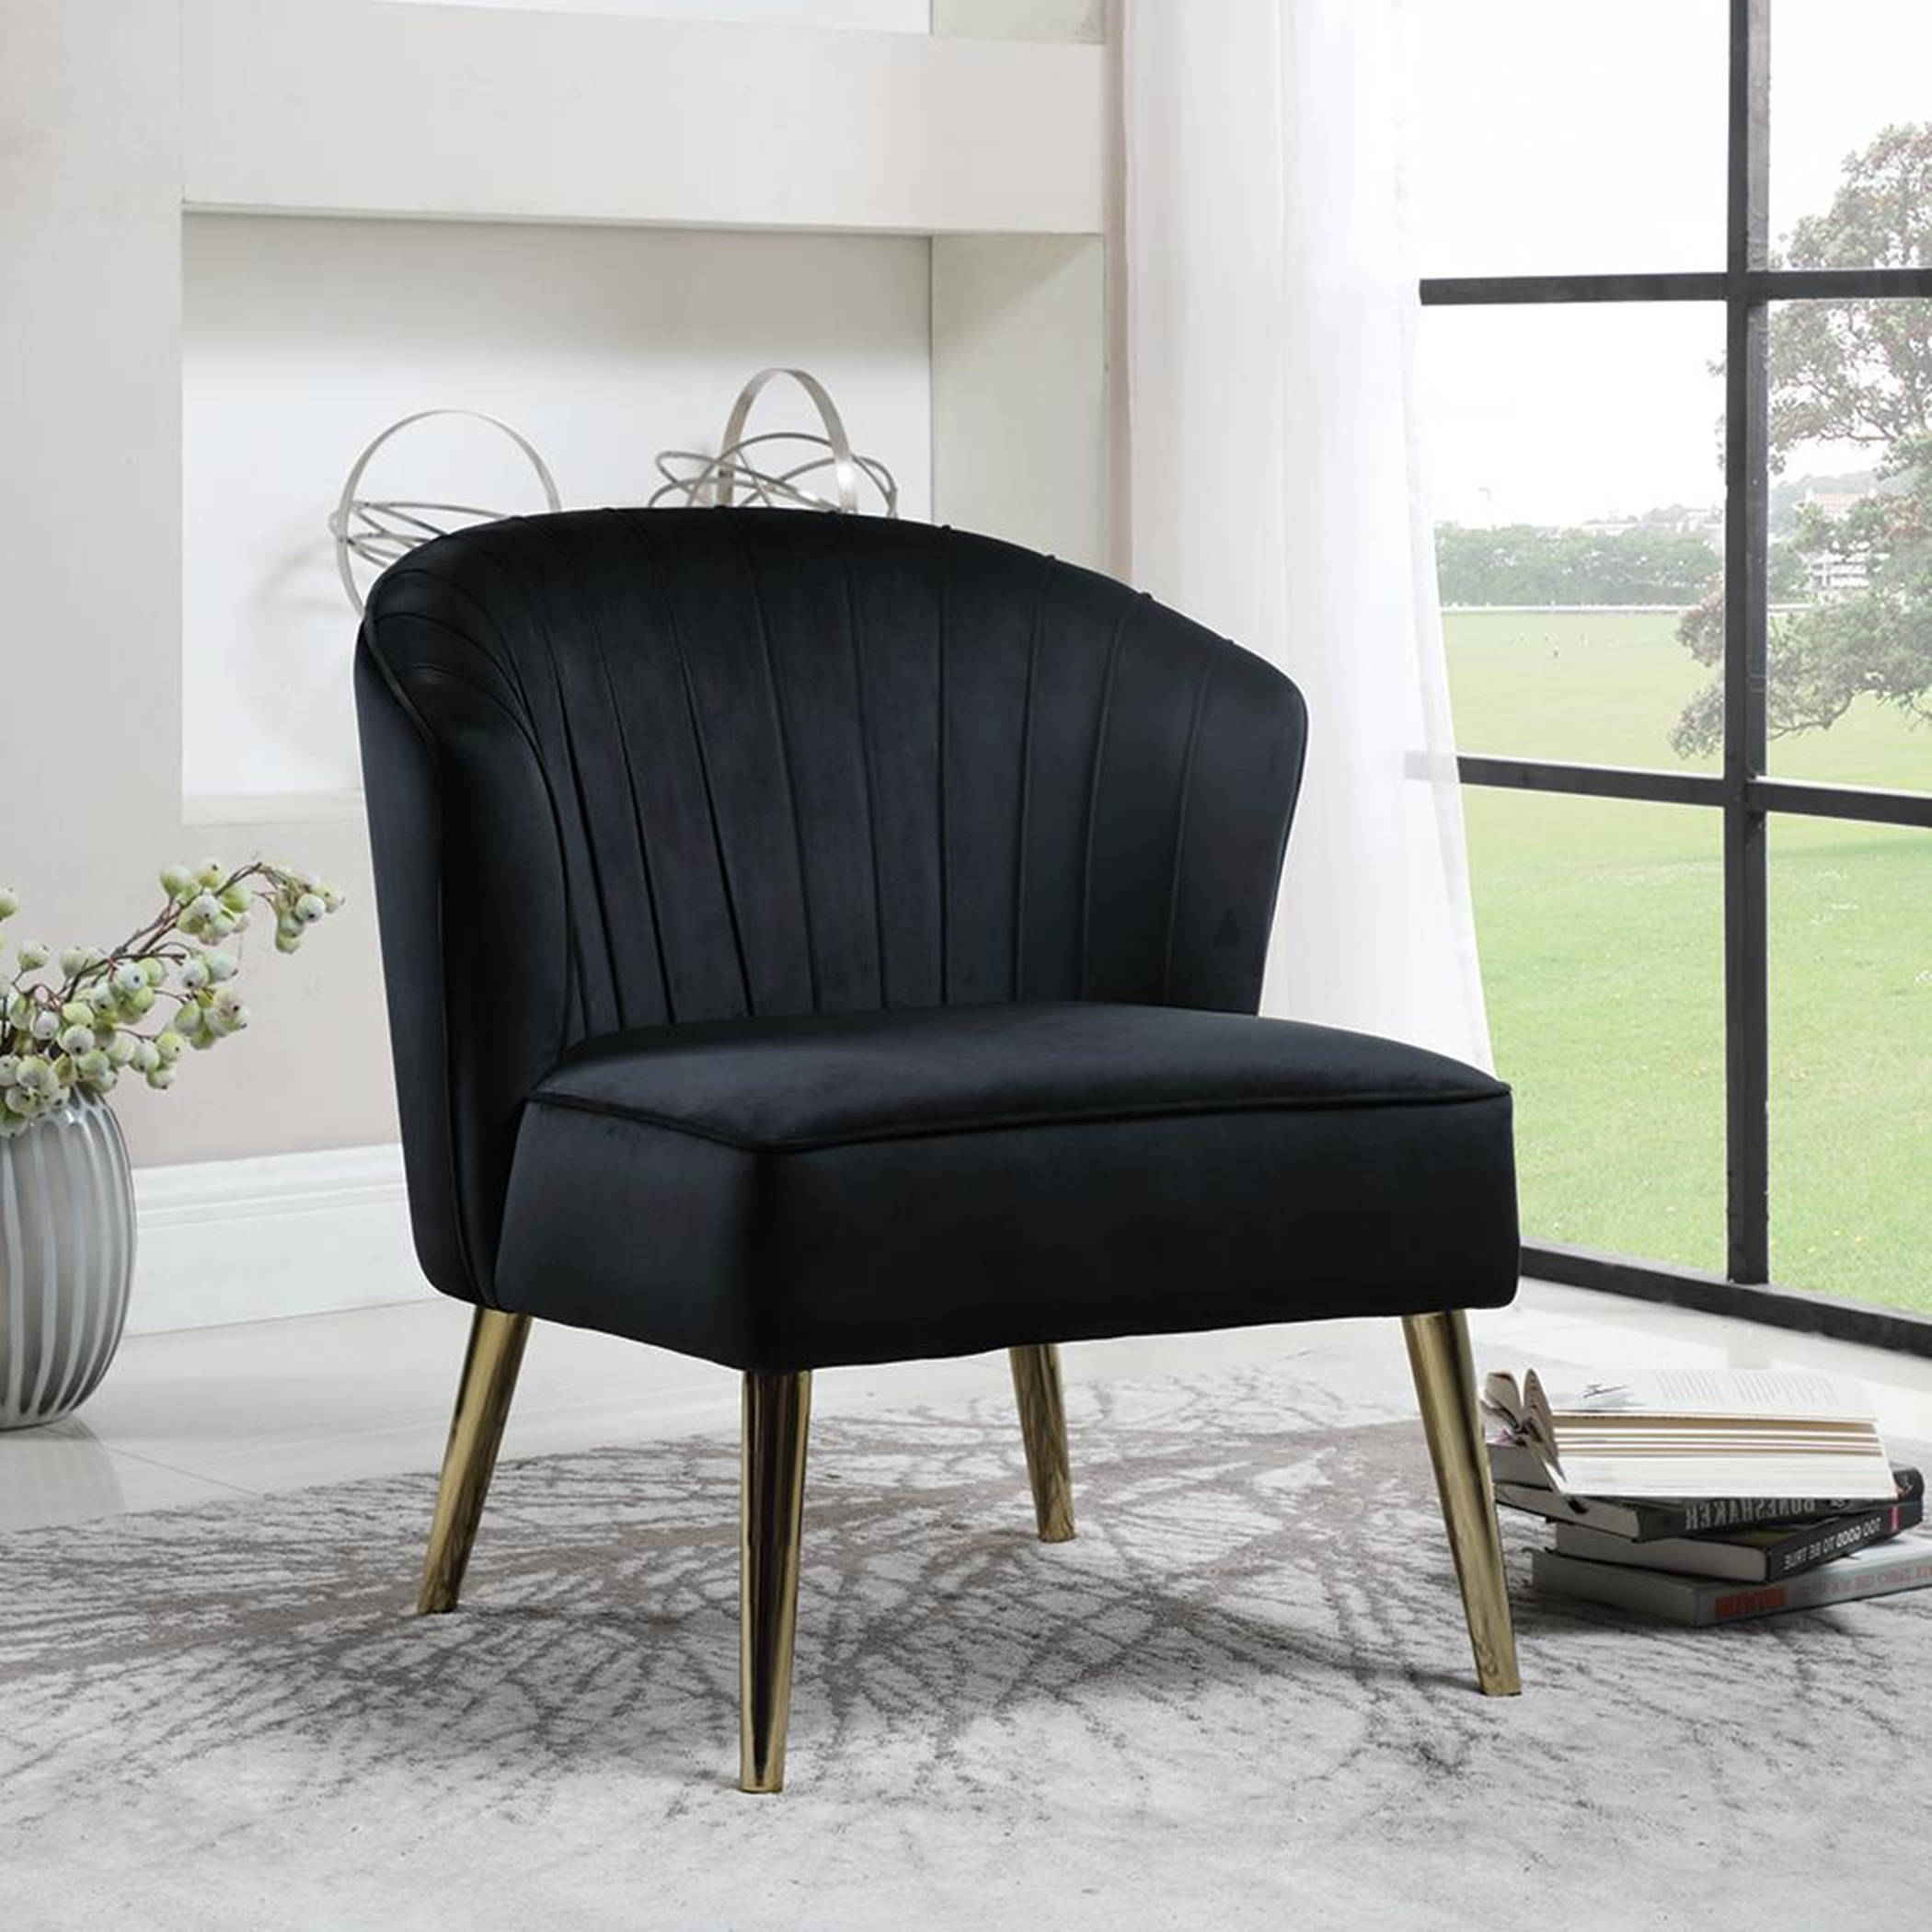 903030 - Accent Chair